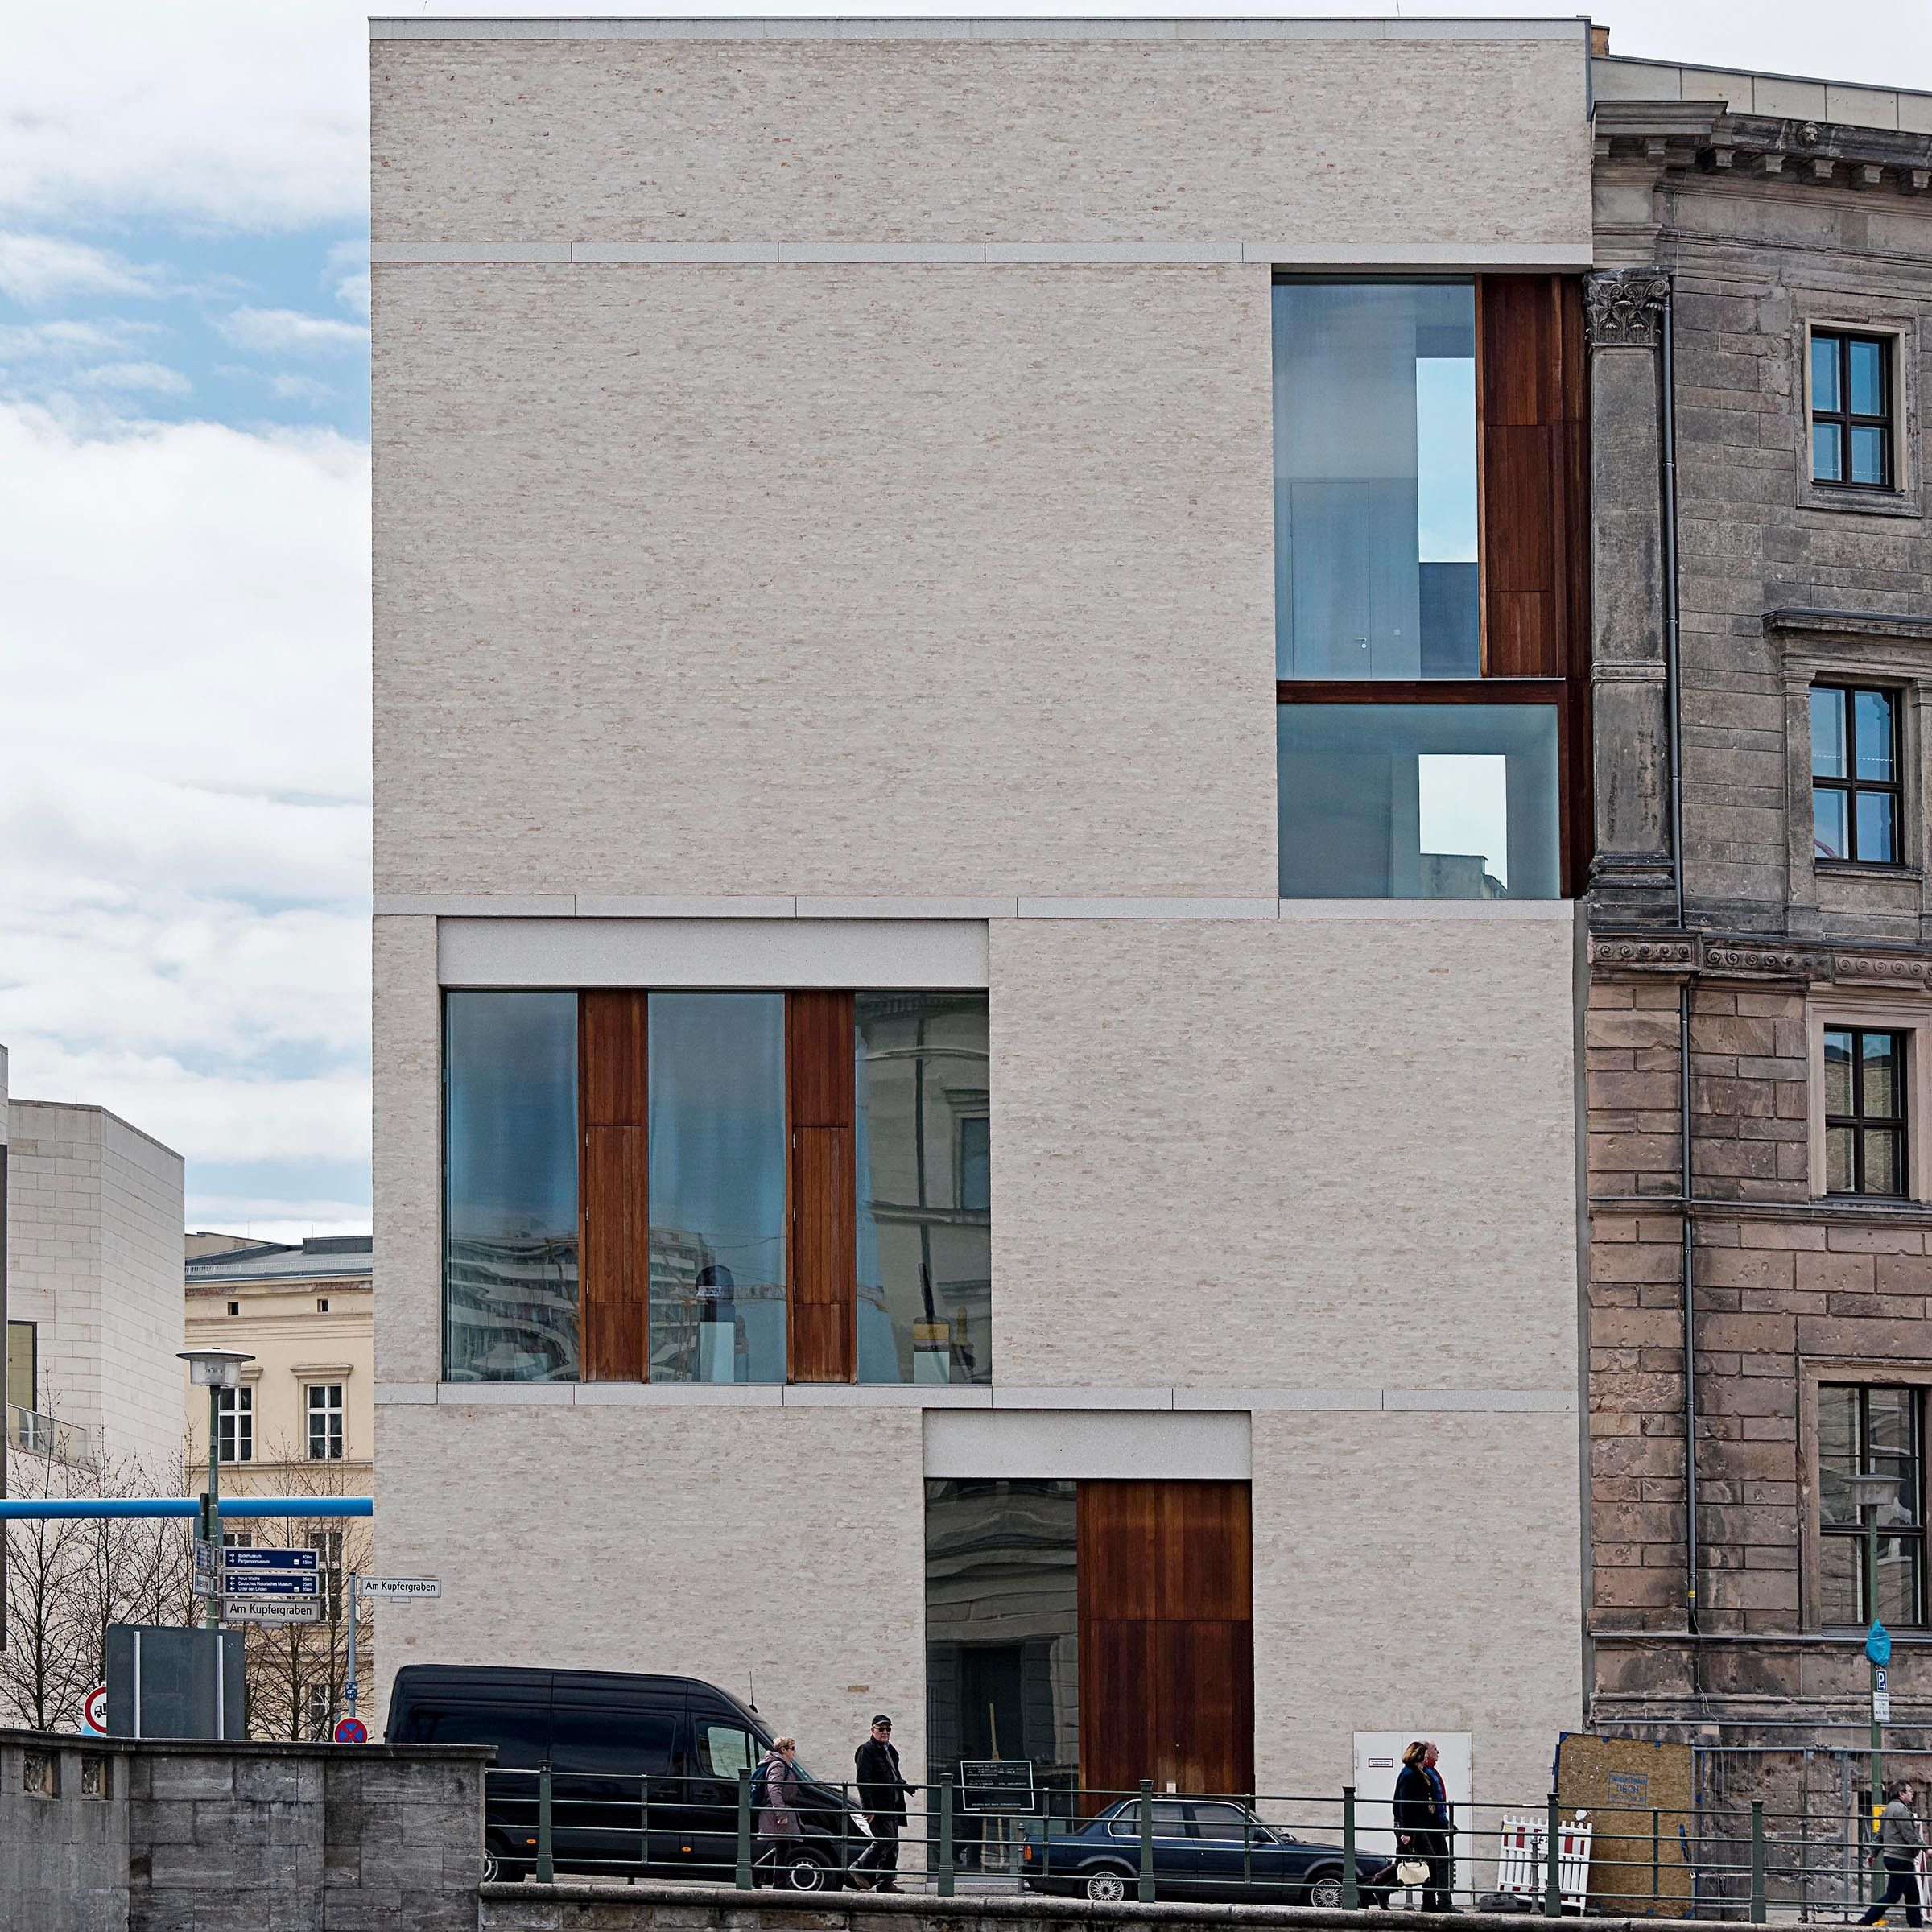 Gallery building by david chipperfield architects ltd for Architektur master berlin